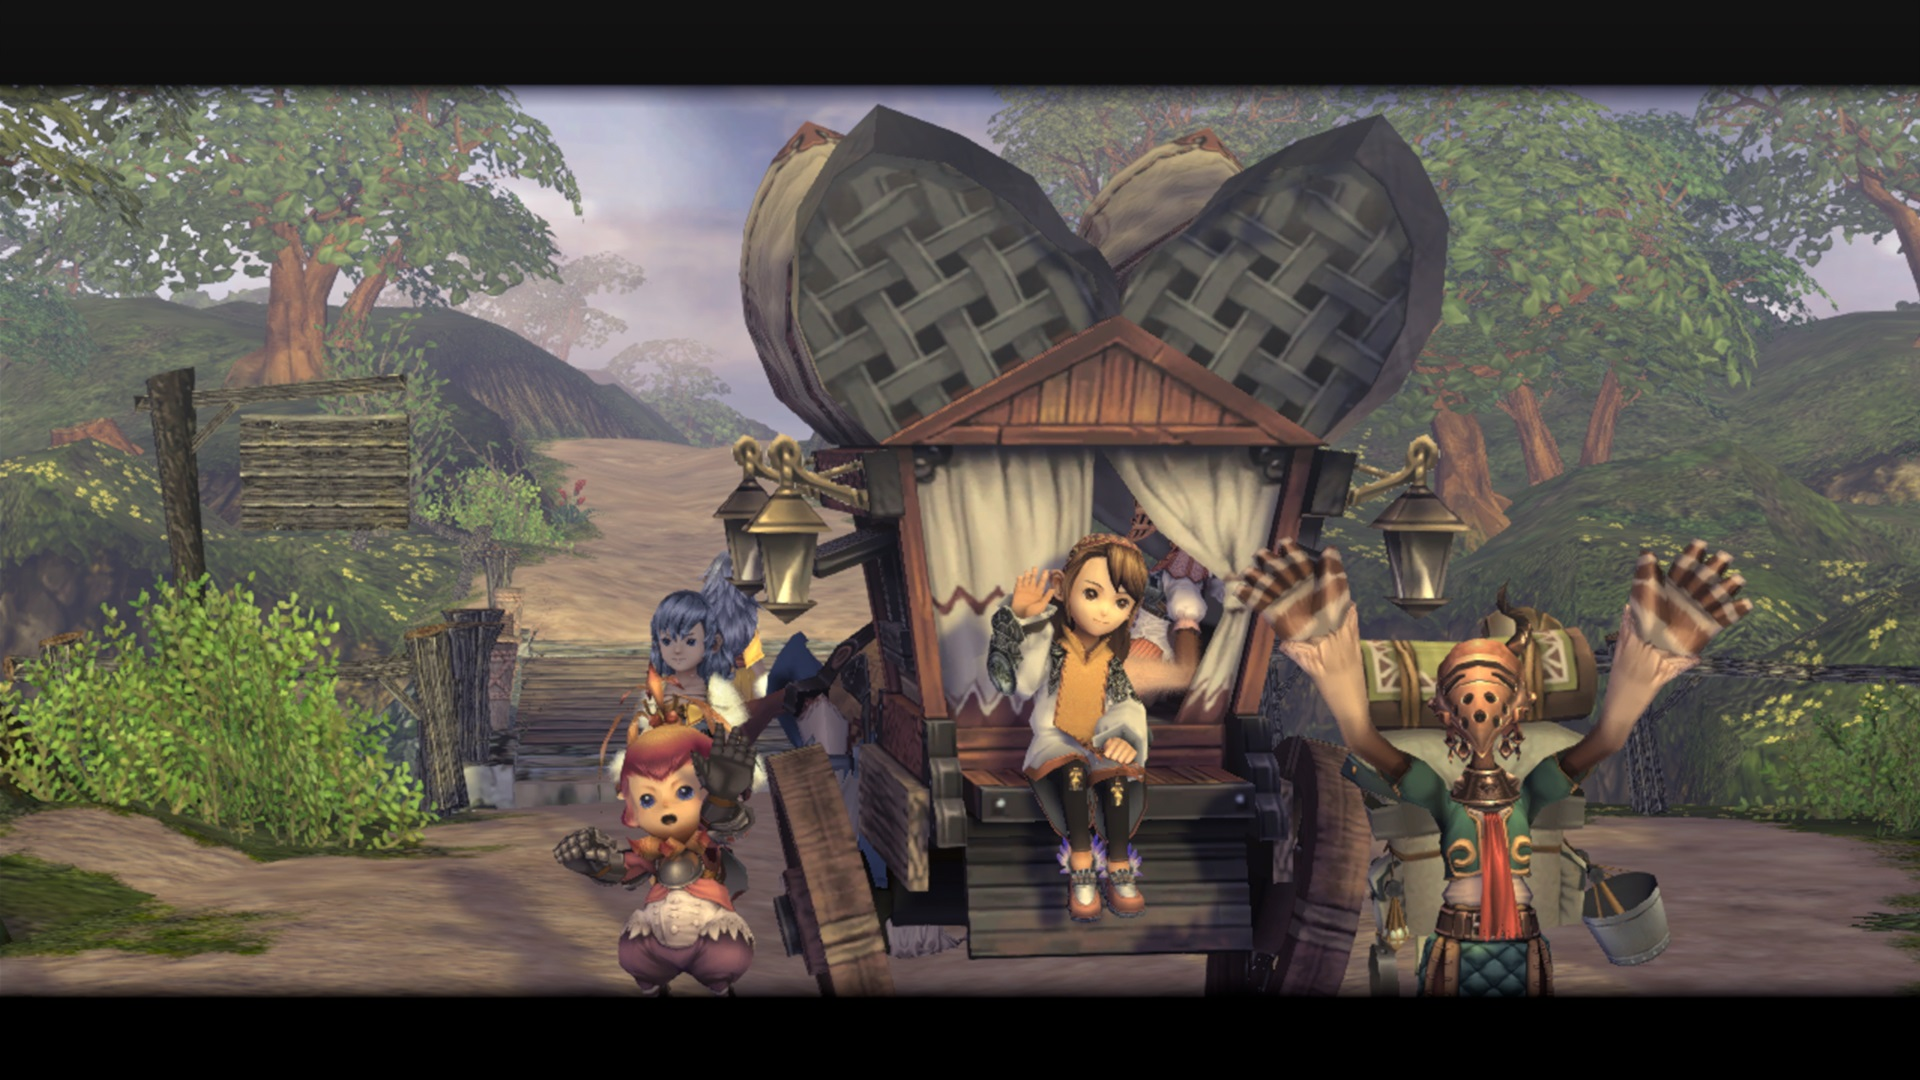 Análisis de Final Fantasy Crystal Chronicles Remastered